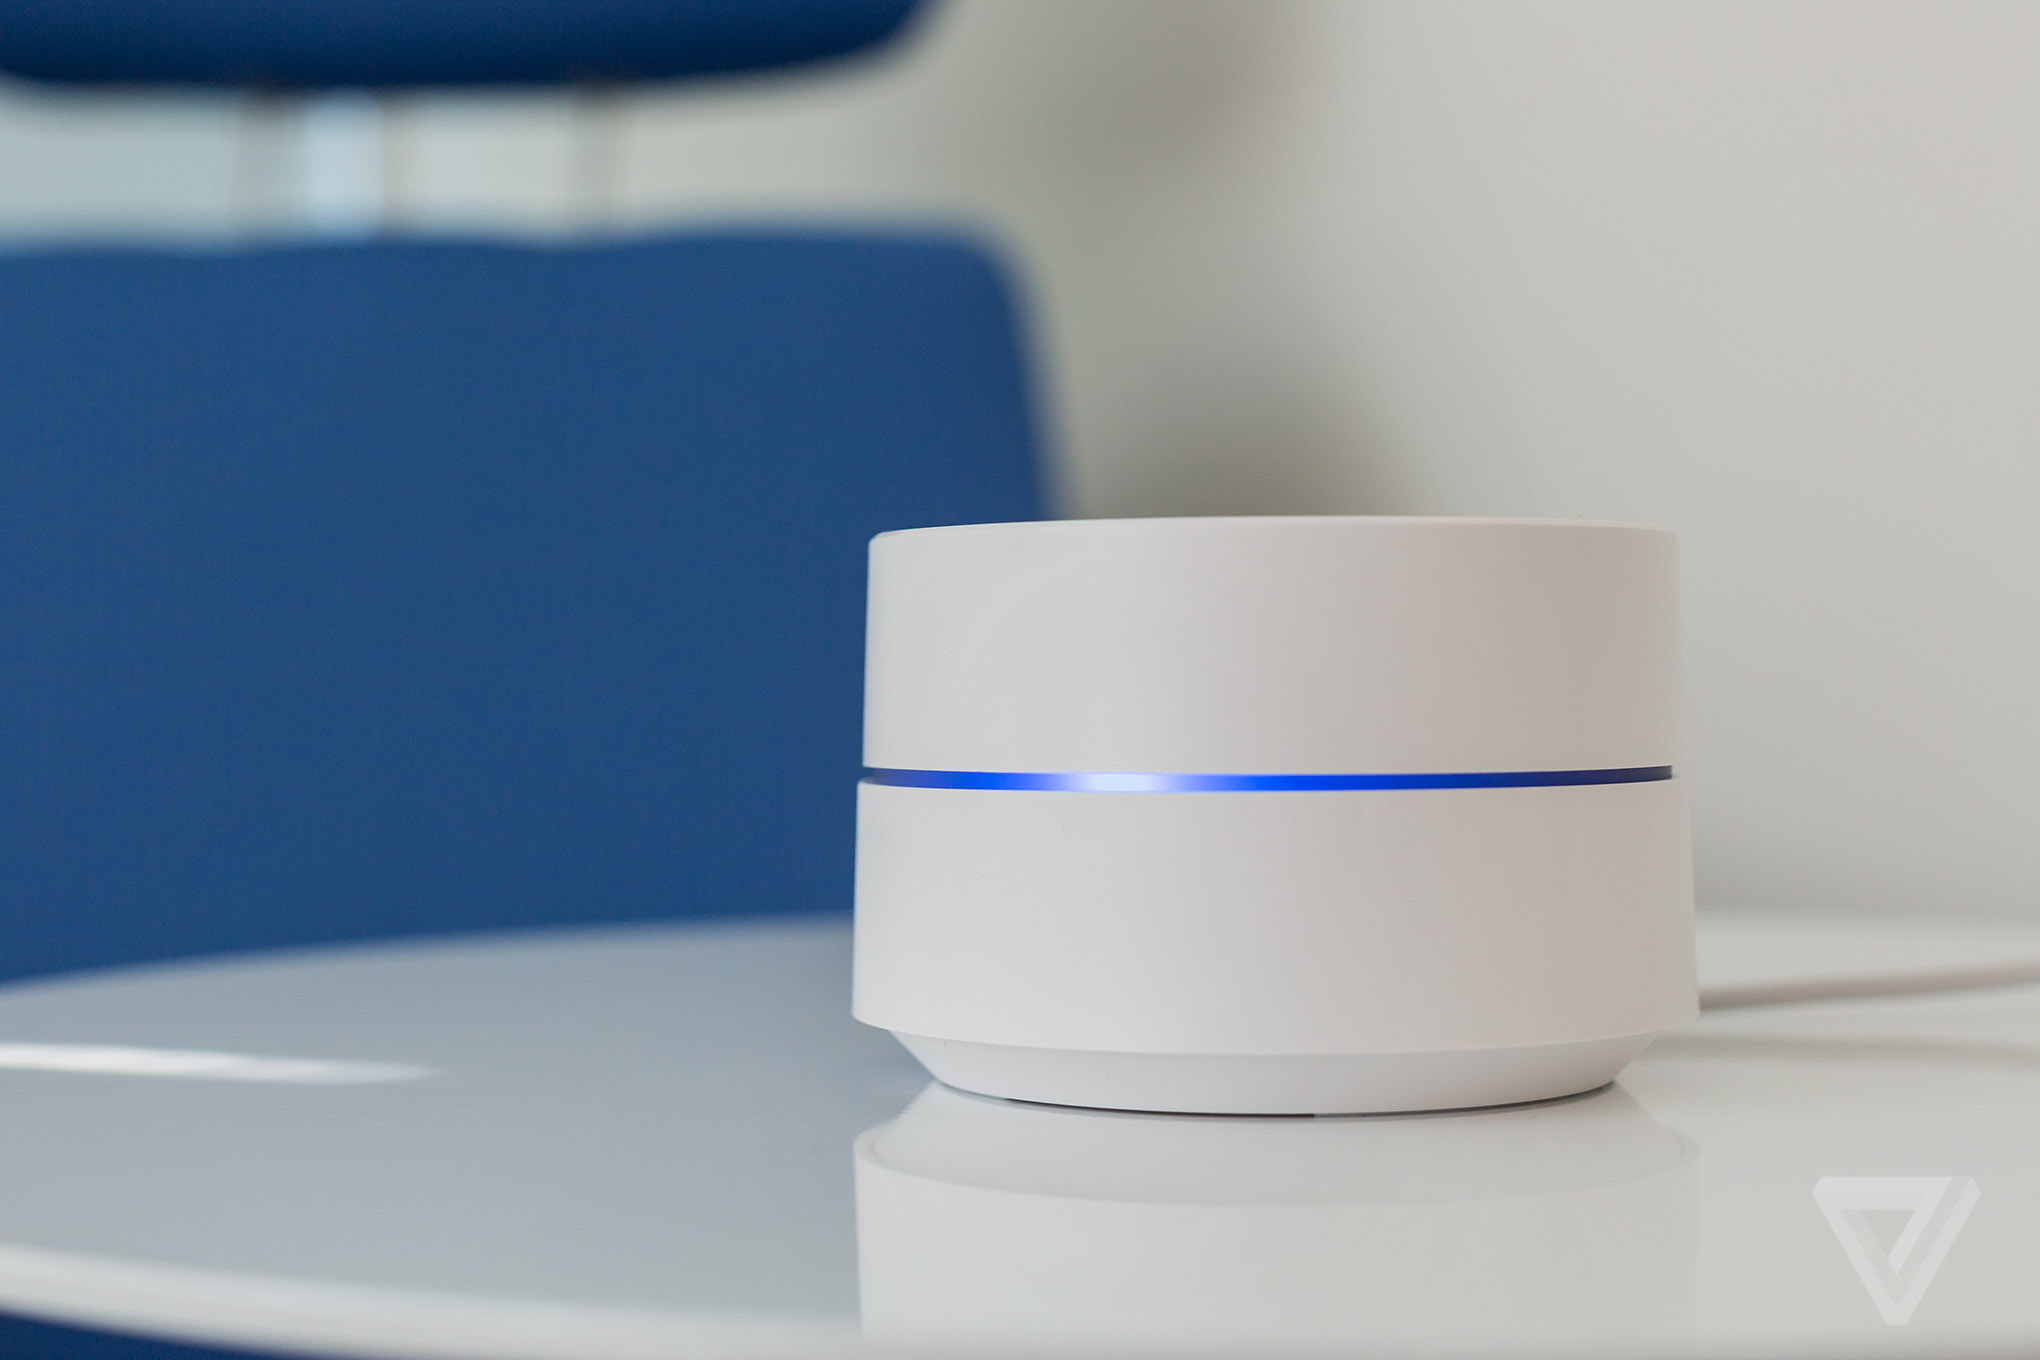 Mystery FCC filing probably isn't a new Google Wifi - The Verge